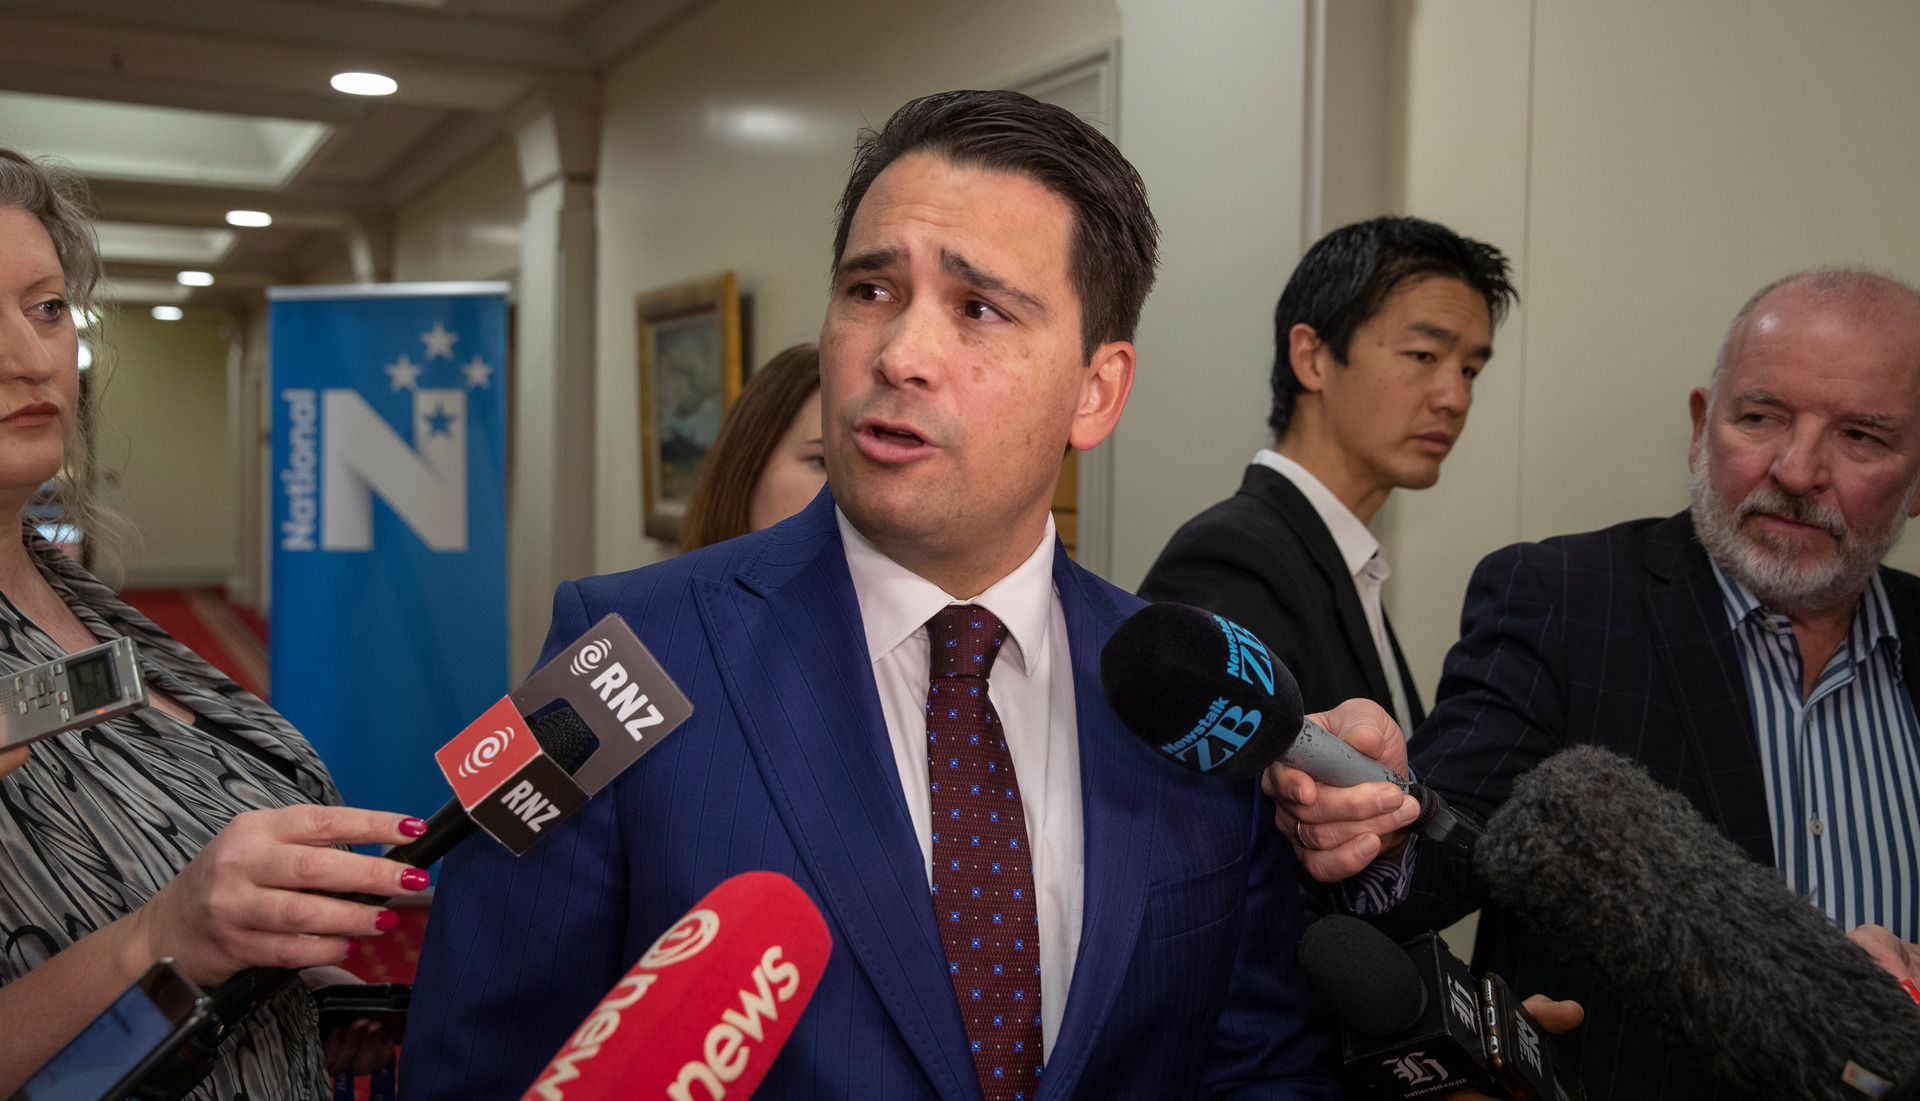 Simon Bridges' phone call with Air NZ boss and possible National candidate Christopher Luxon